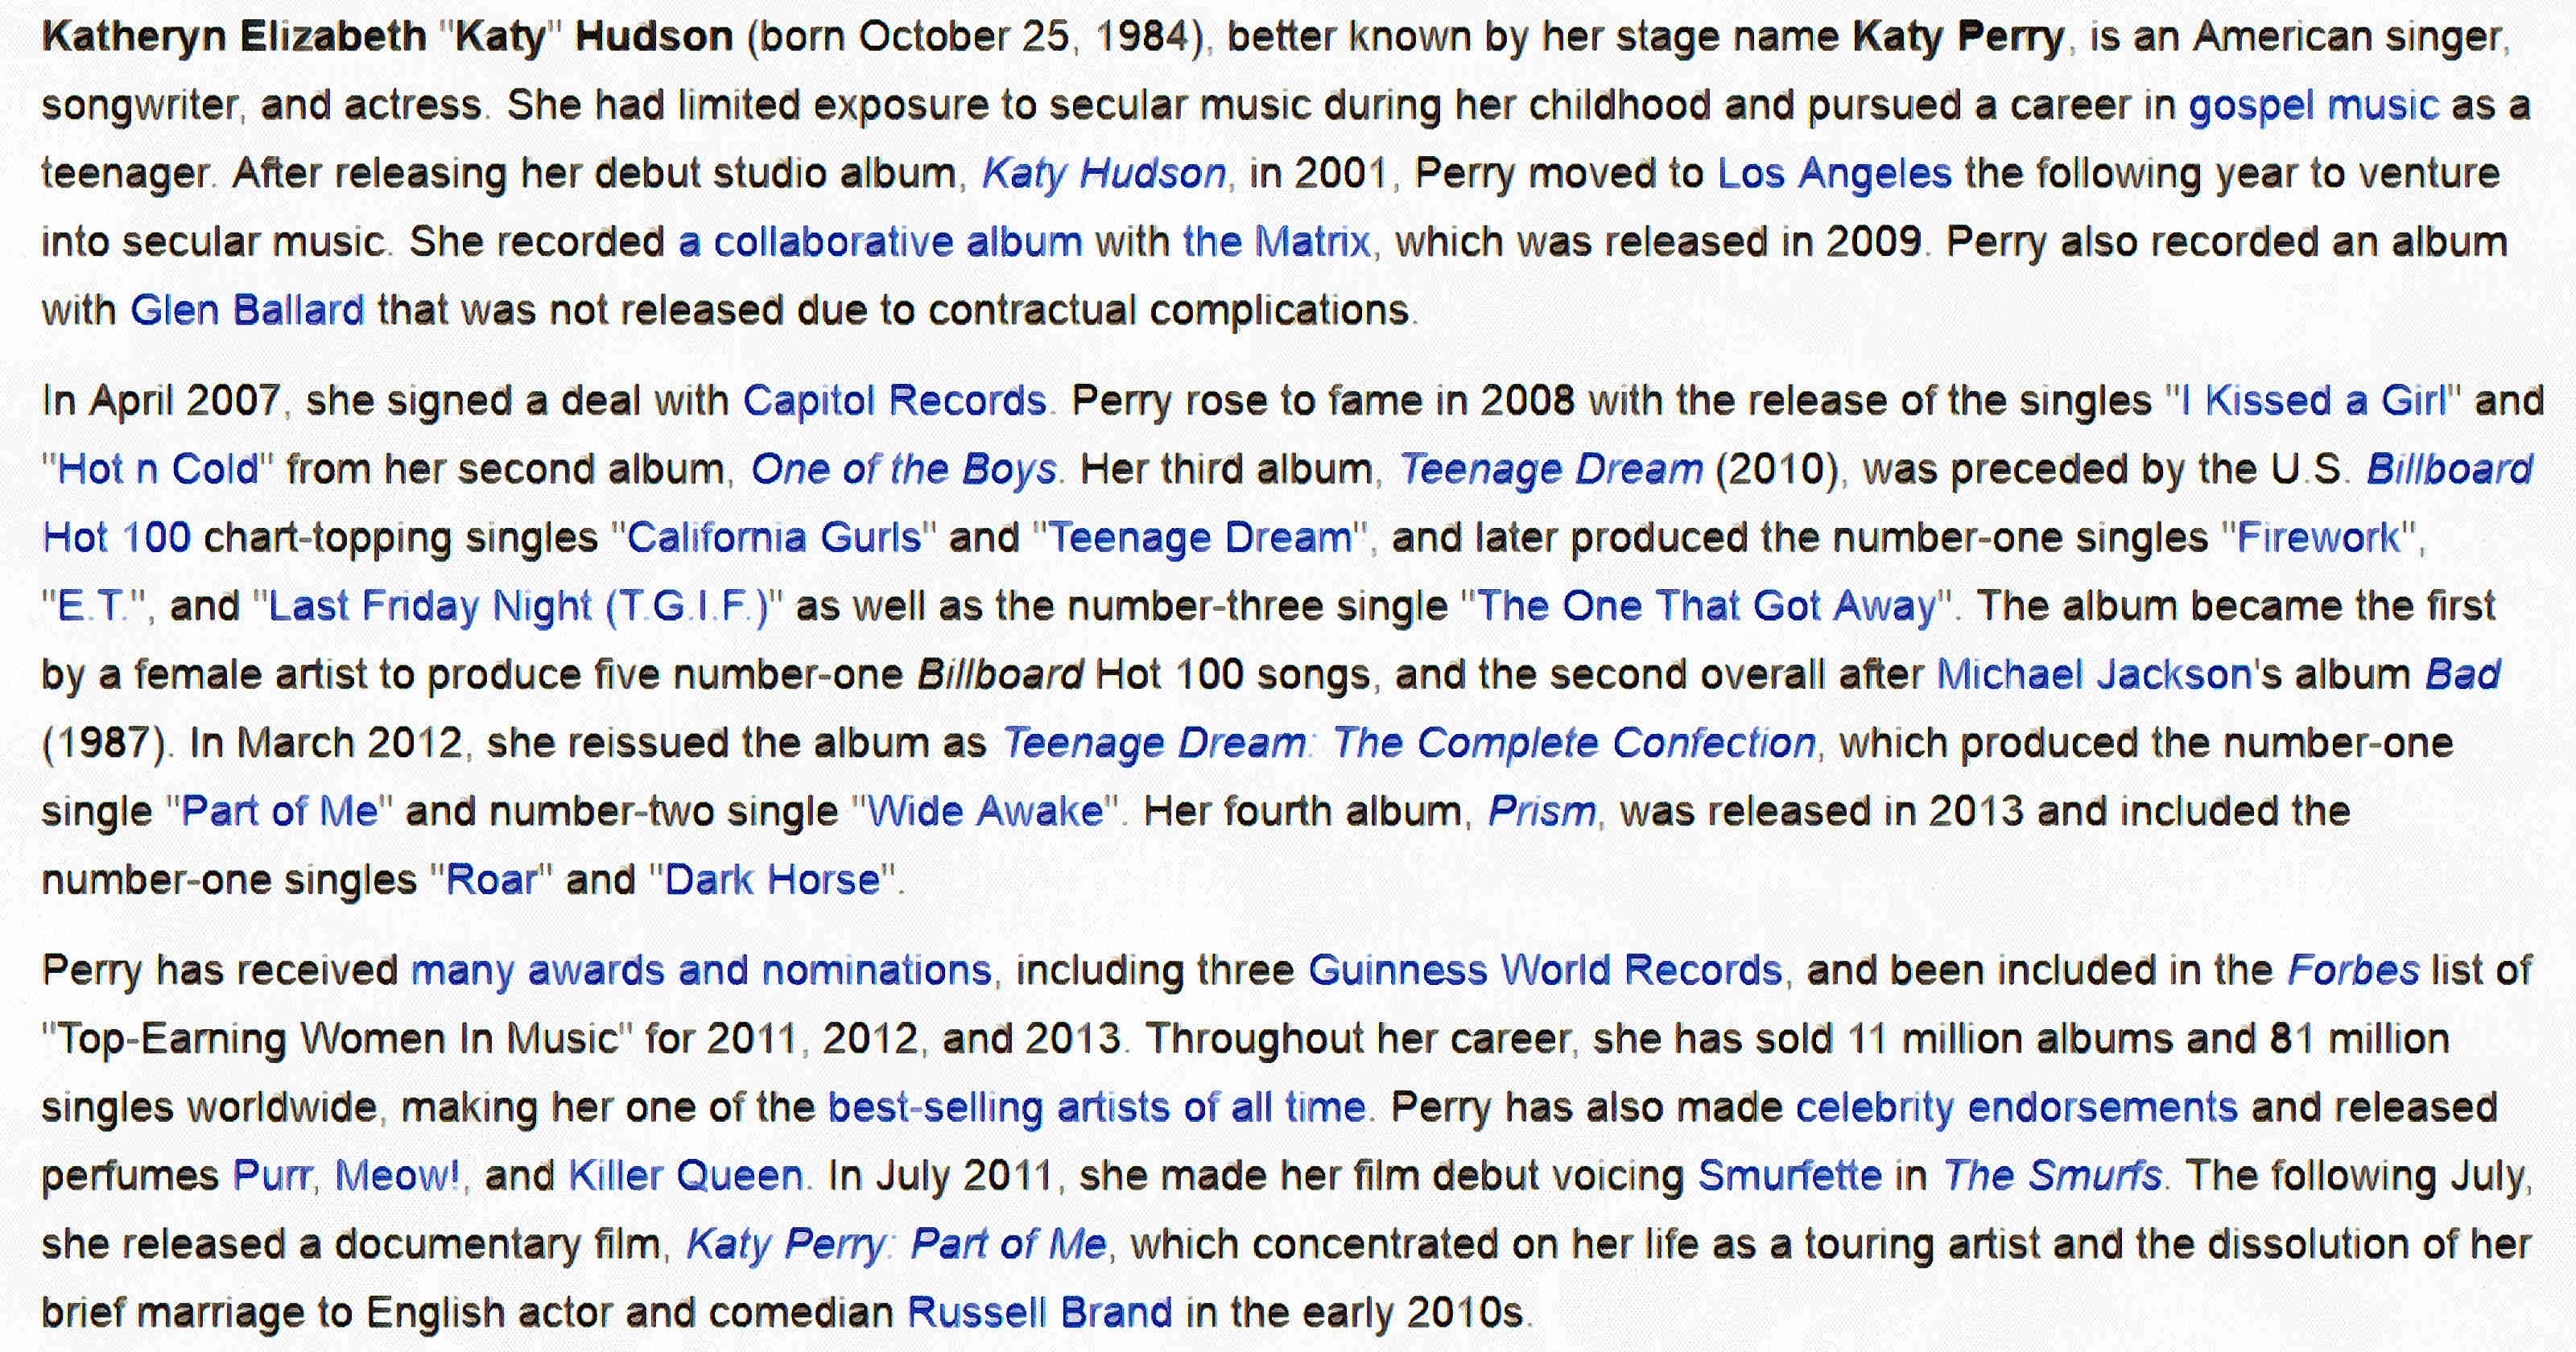 Facts about Katy Perry